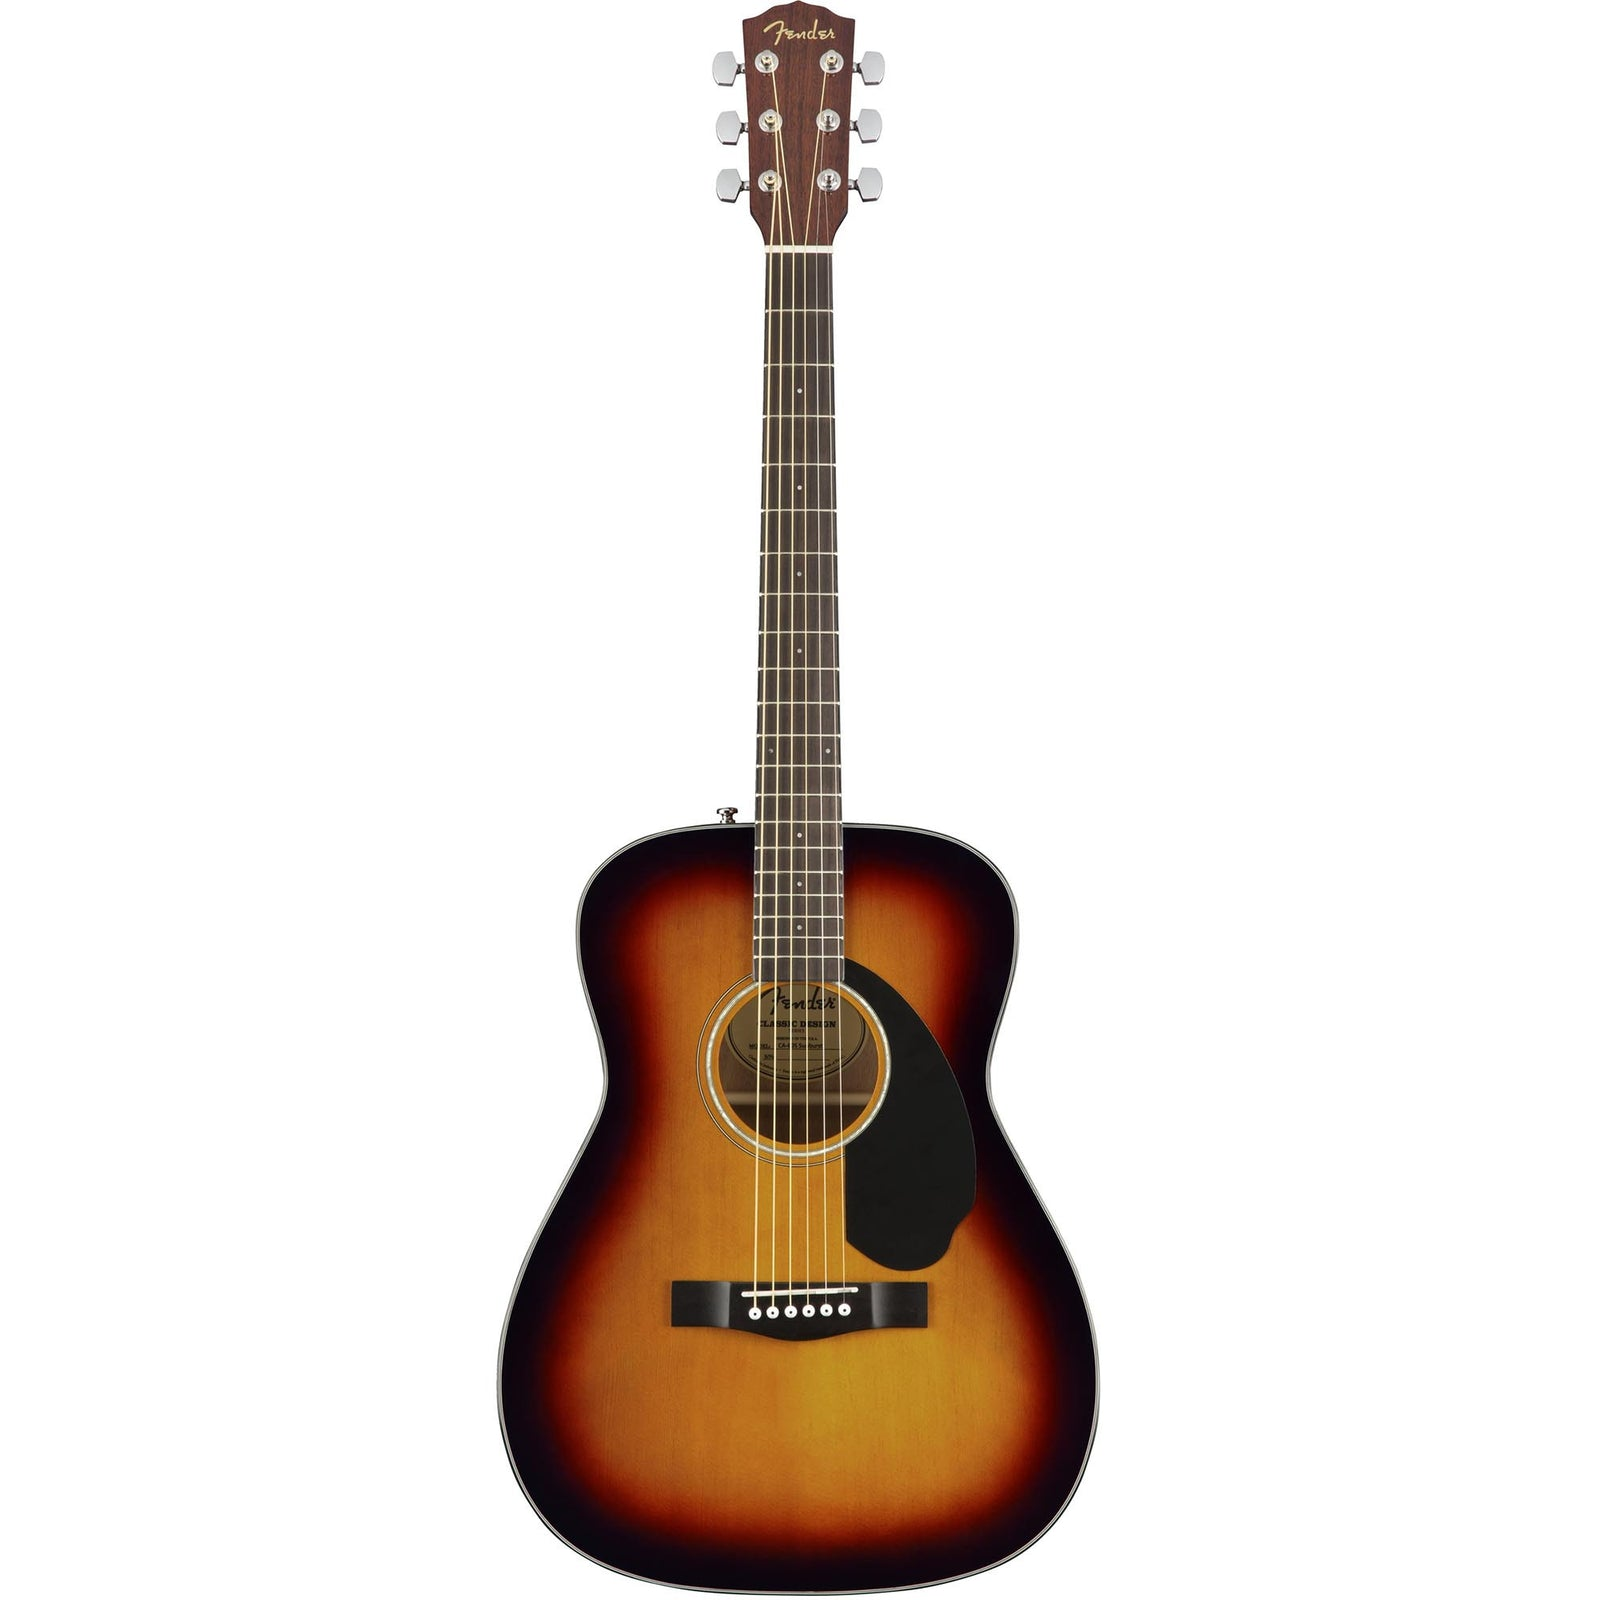 Fender CC-60S Acoustic Guitar - 3-Tone Sunburst